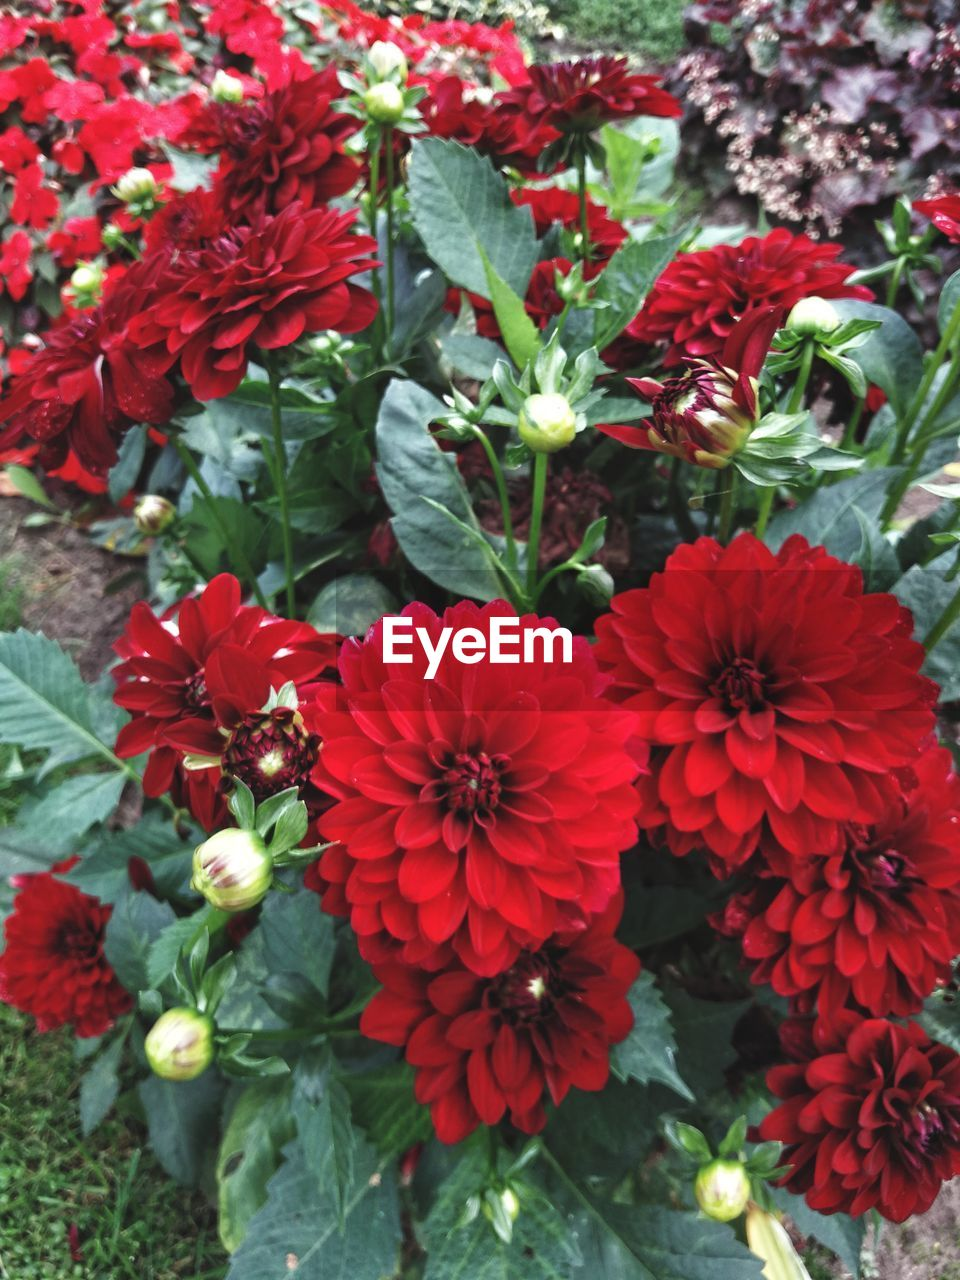 HIGH ANGLE VIEW OF RED FLOWERS ON PLANT